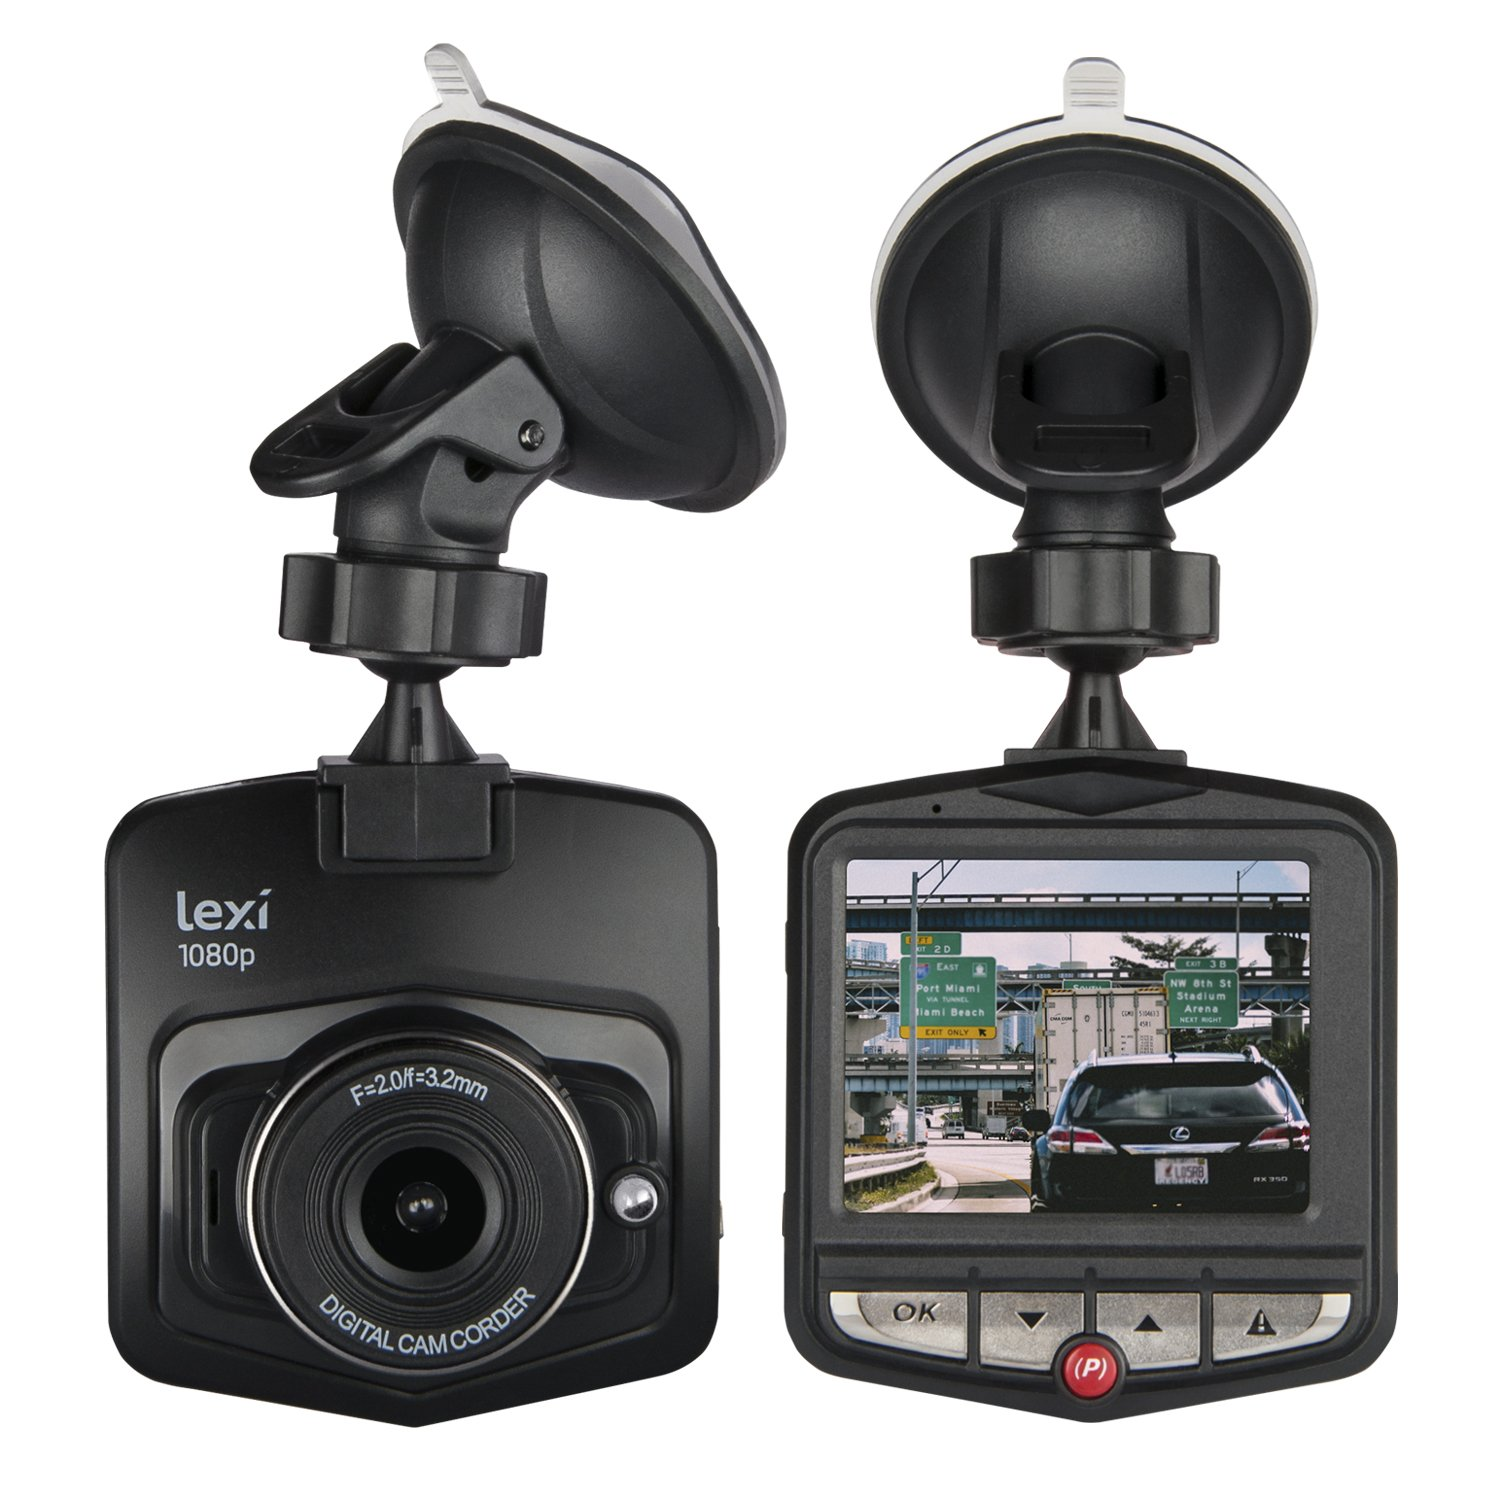 1080P HD Dash Cam. In Car Dash Camera; Dashcam for Cars Front with LED for Night Vision, Parking Monitor, Motion Detection, G Sensor & Loop Recording Philex Electronic Ltd PI00499/14